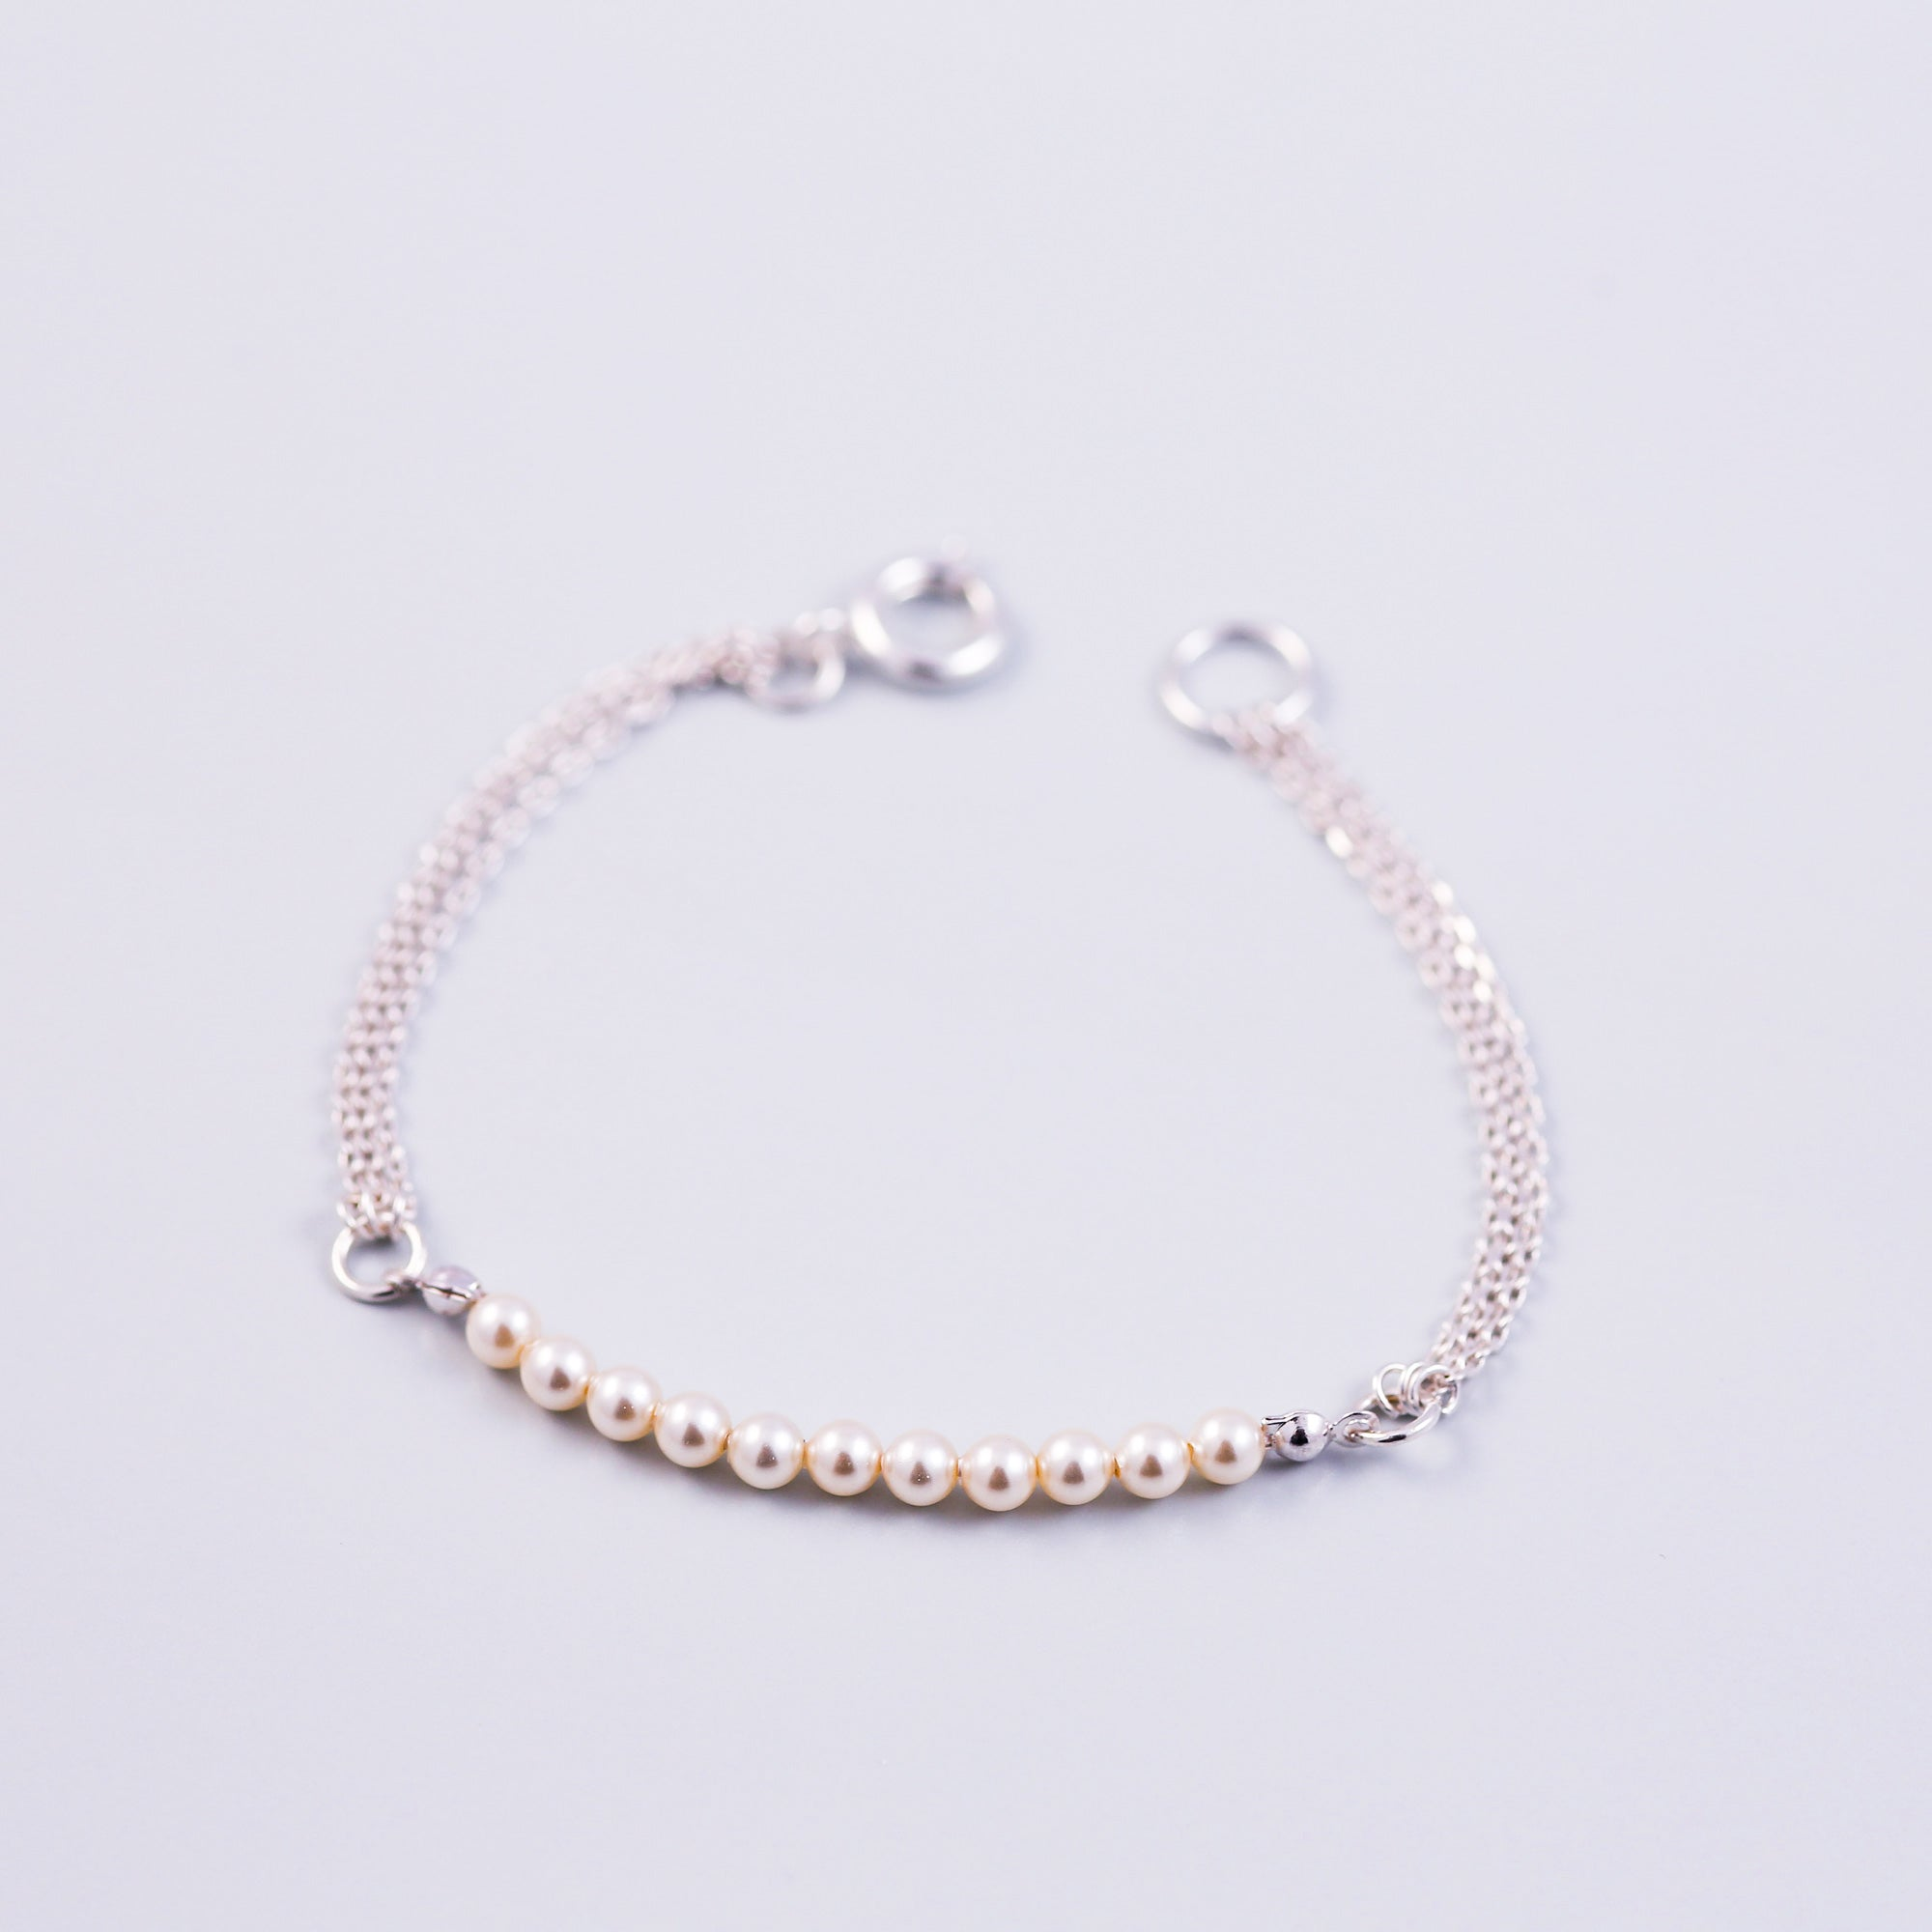 Pearl Bead Bracelet | Cute Friendship Bracelets | Friendship Jewellery | Silver & Cream